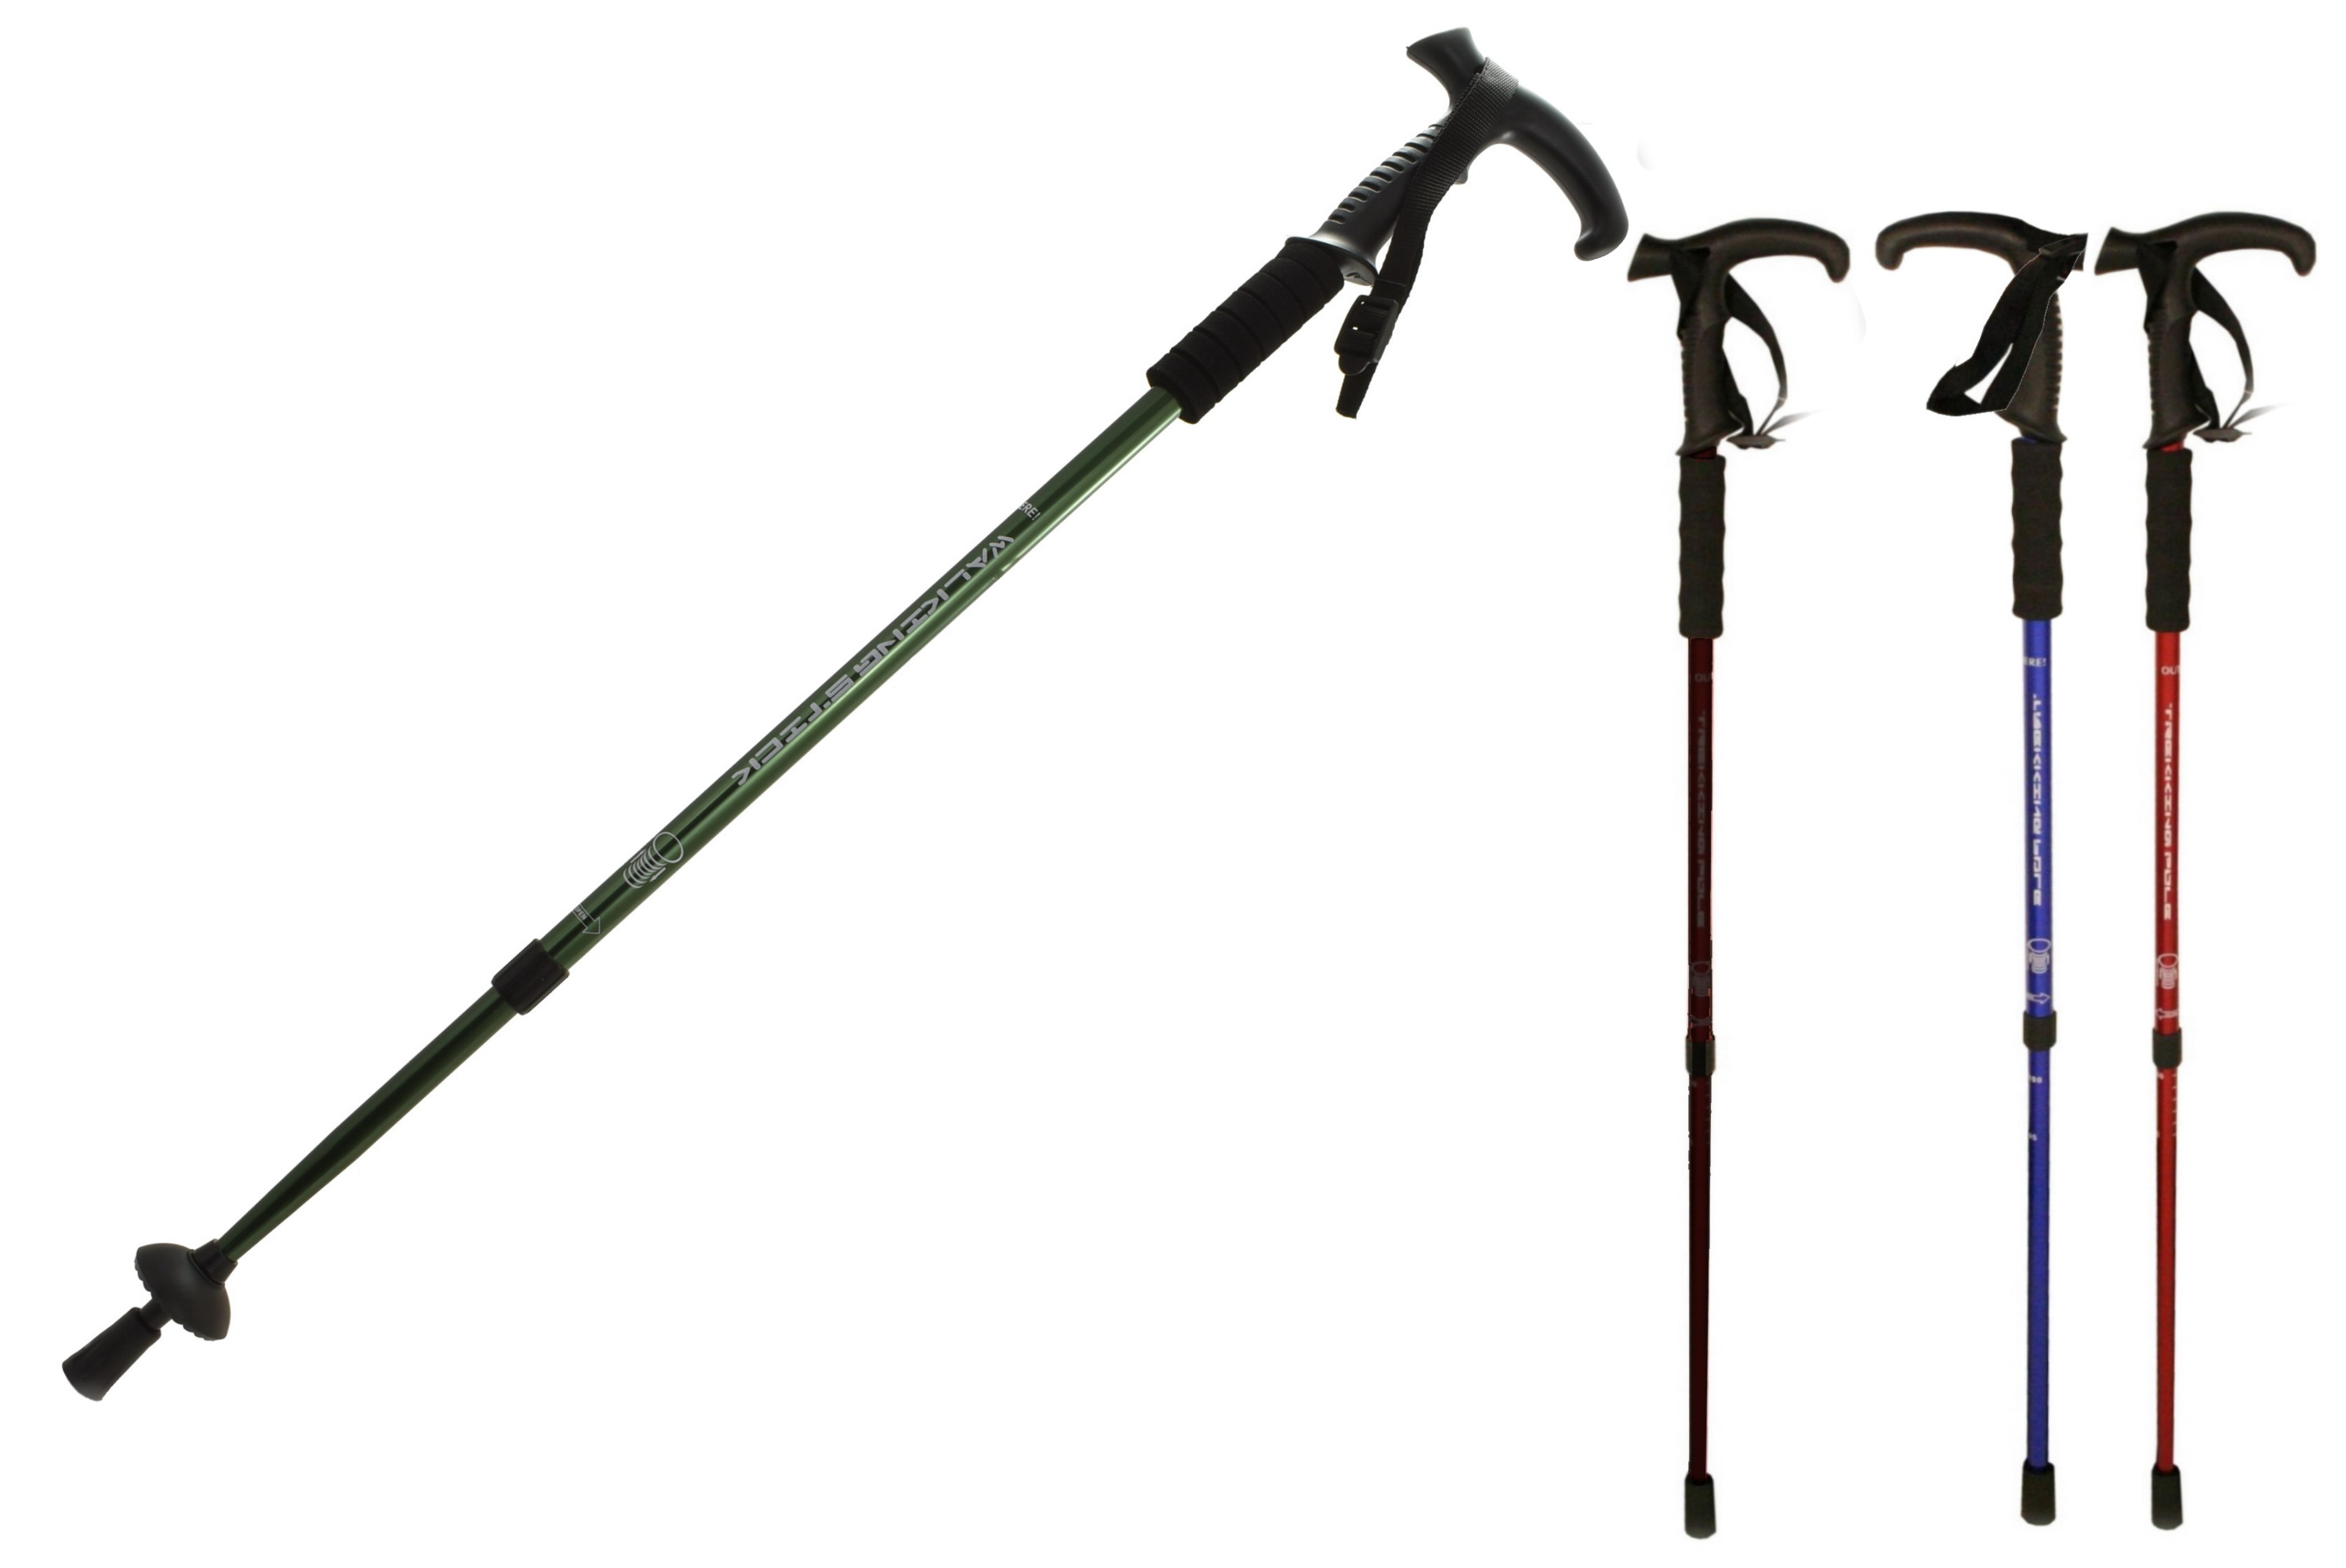 2 Section Aluminium Telescopic Walking Stick Anti-Shock